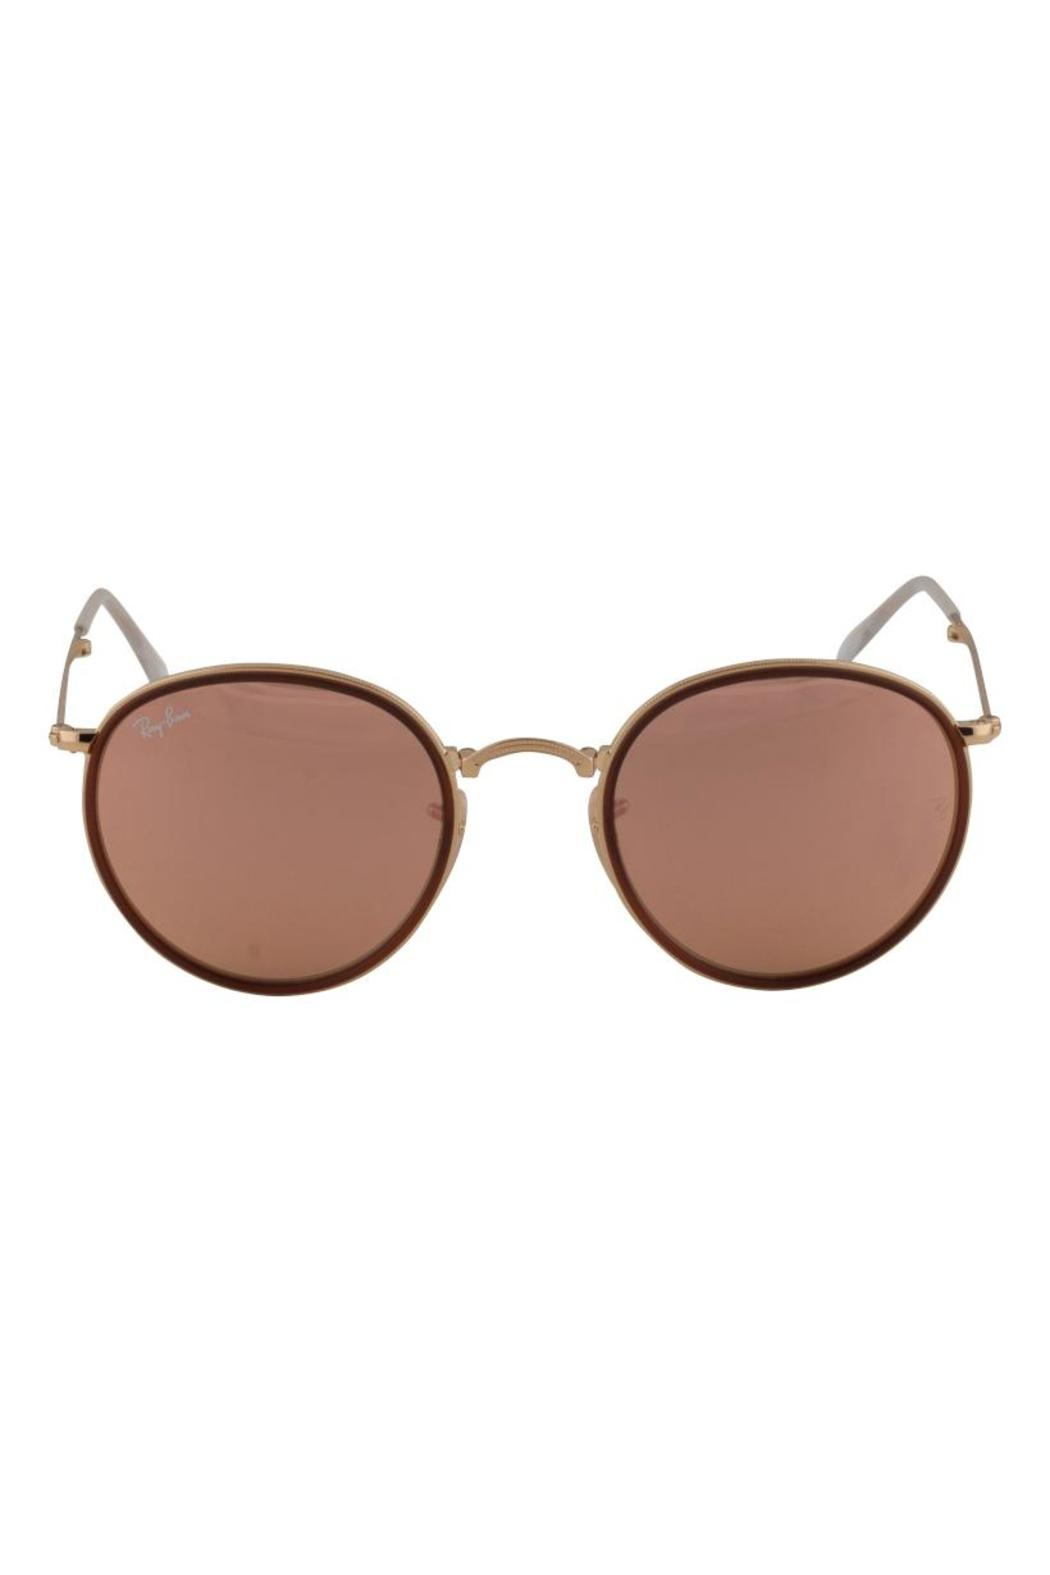 Ray Ban Rayban Folding Sunglasses From Miami By O Sole